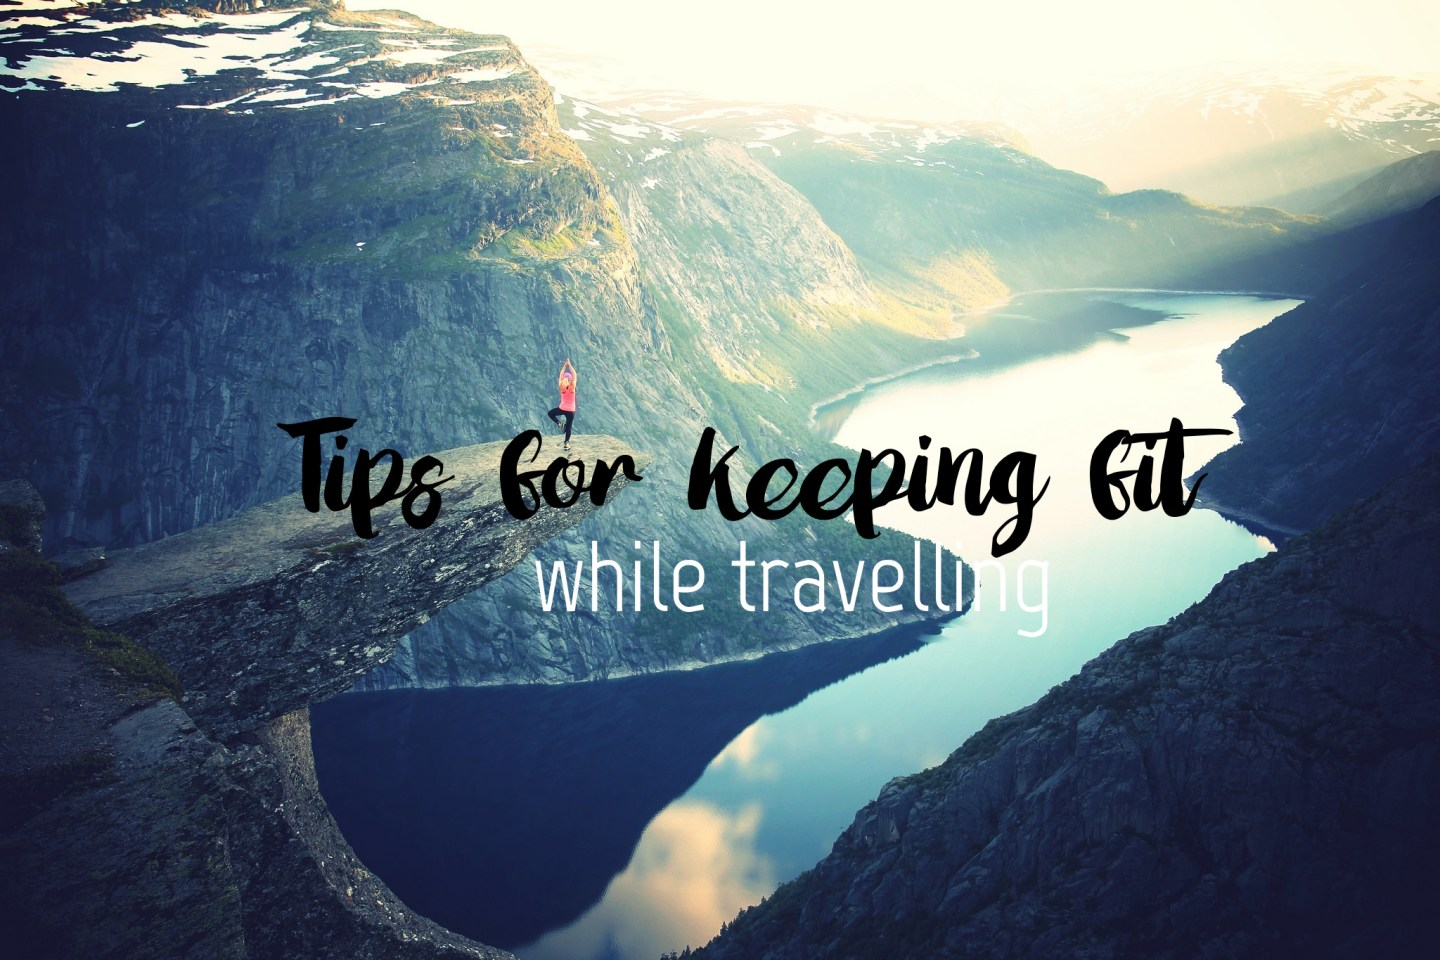 Tips for keeping fit while travelling